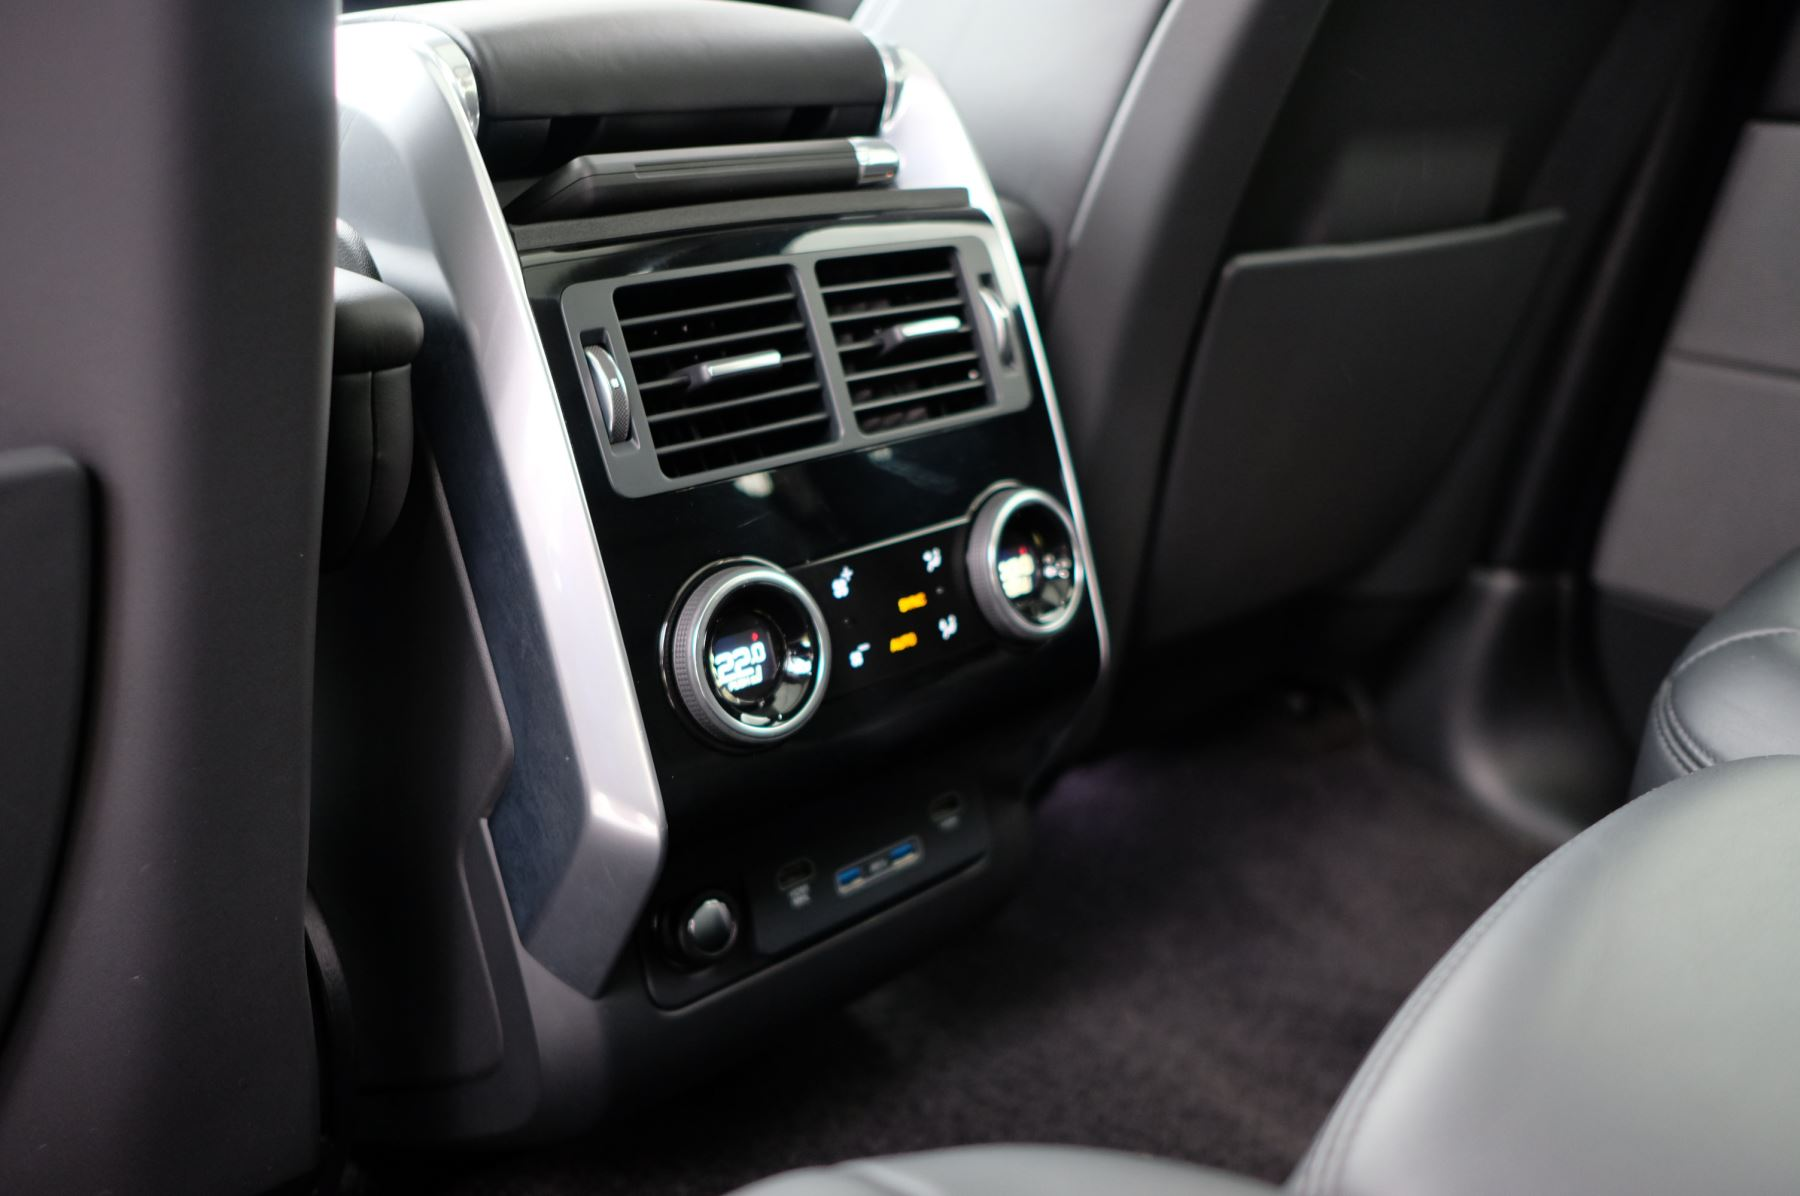 Land Rover Range Rover Sport 3.0 SDV6 Autobiography Dynamic 5dr [7 Seat] - Rear Seat Entertainment - 21 Inch Alloys image 16